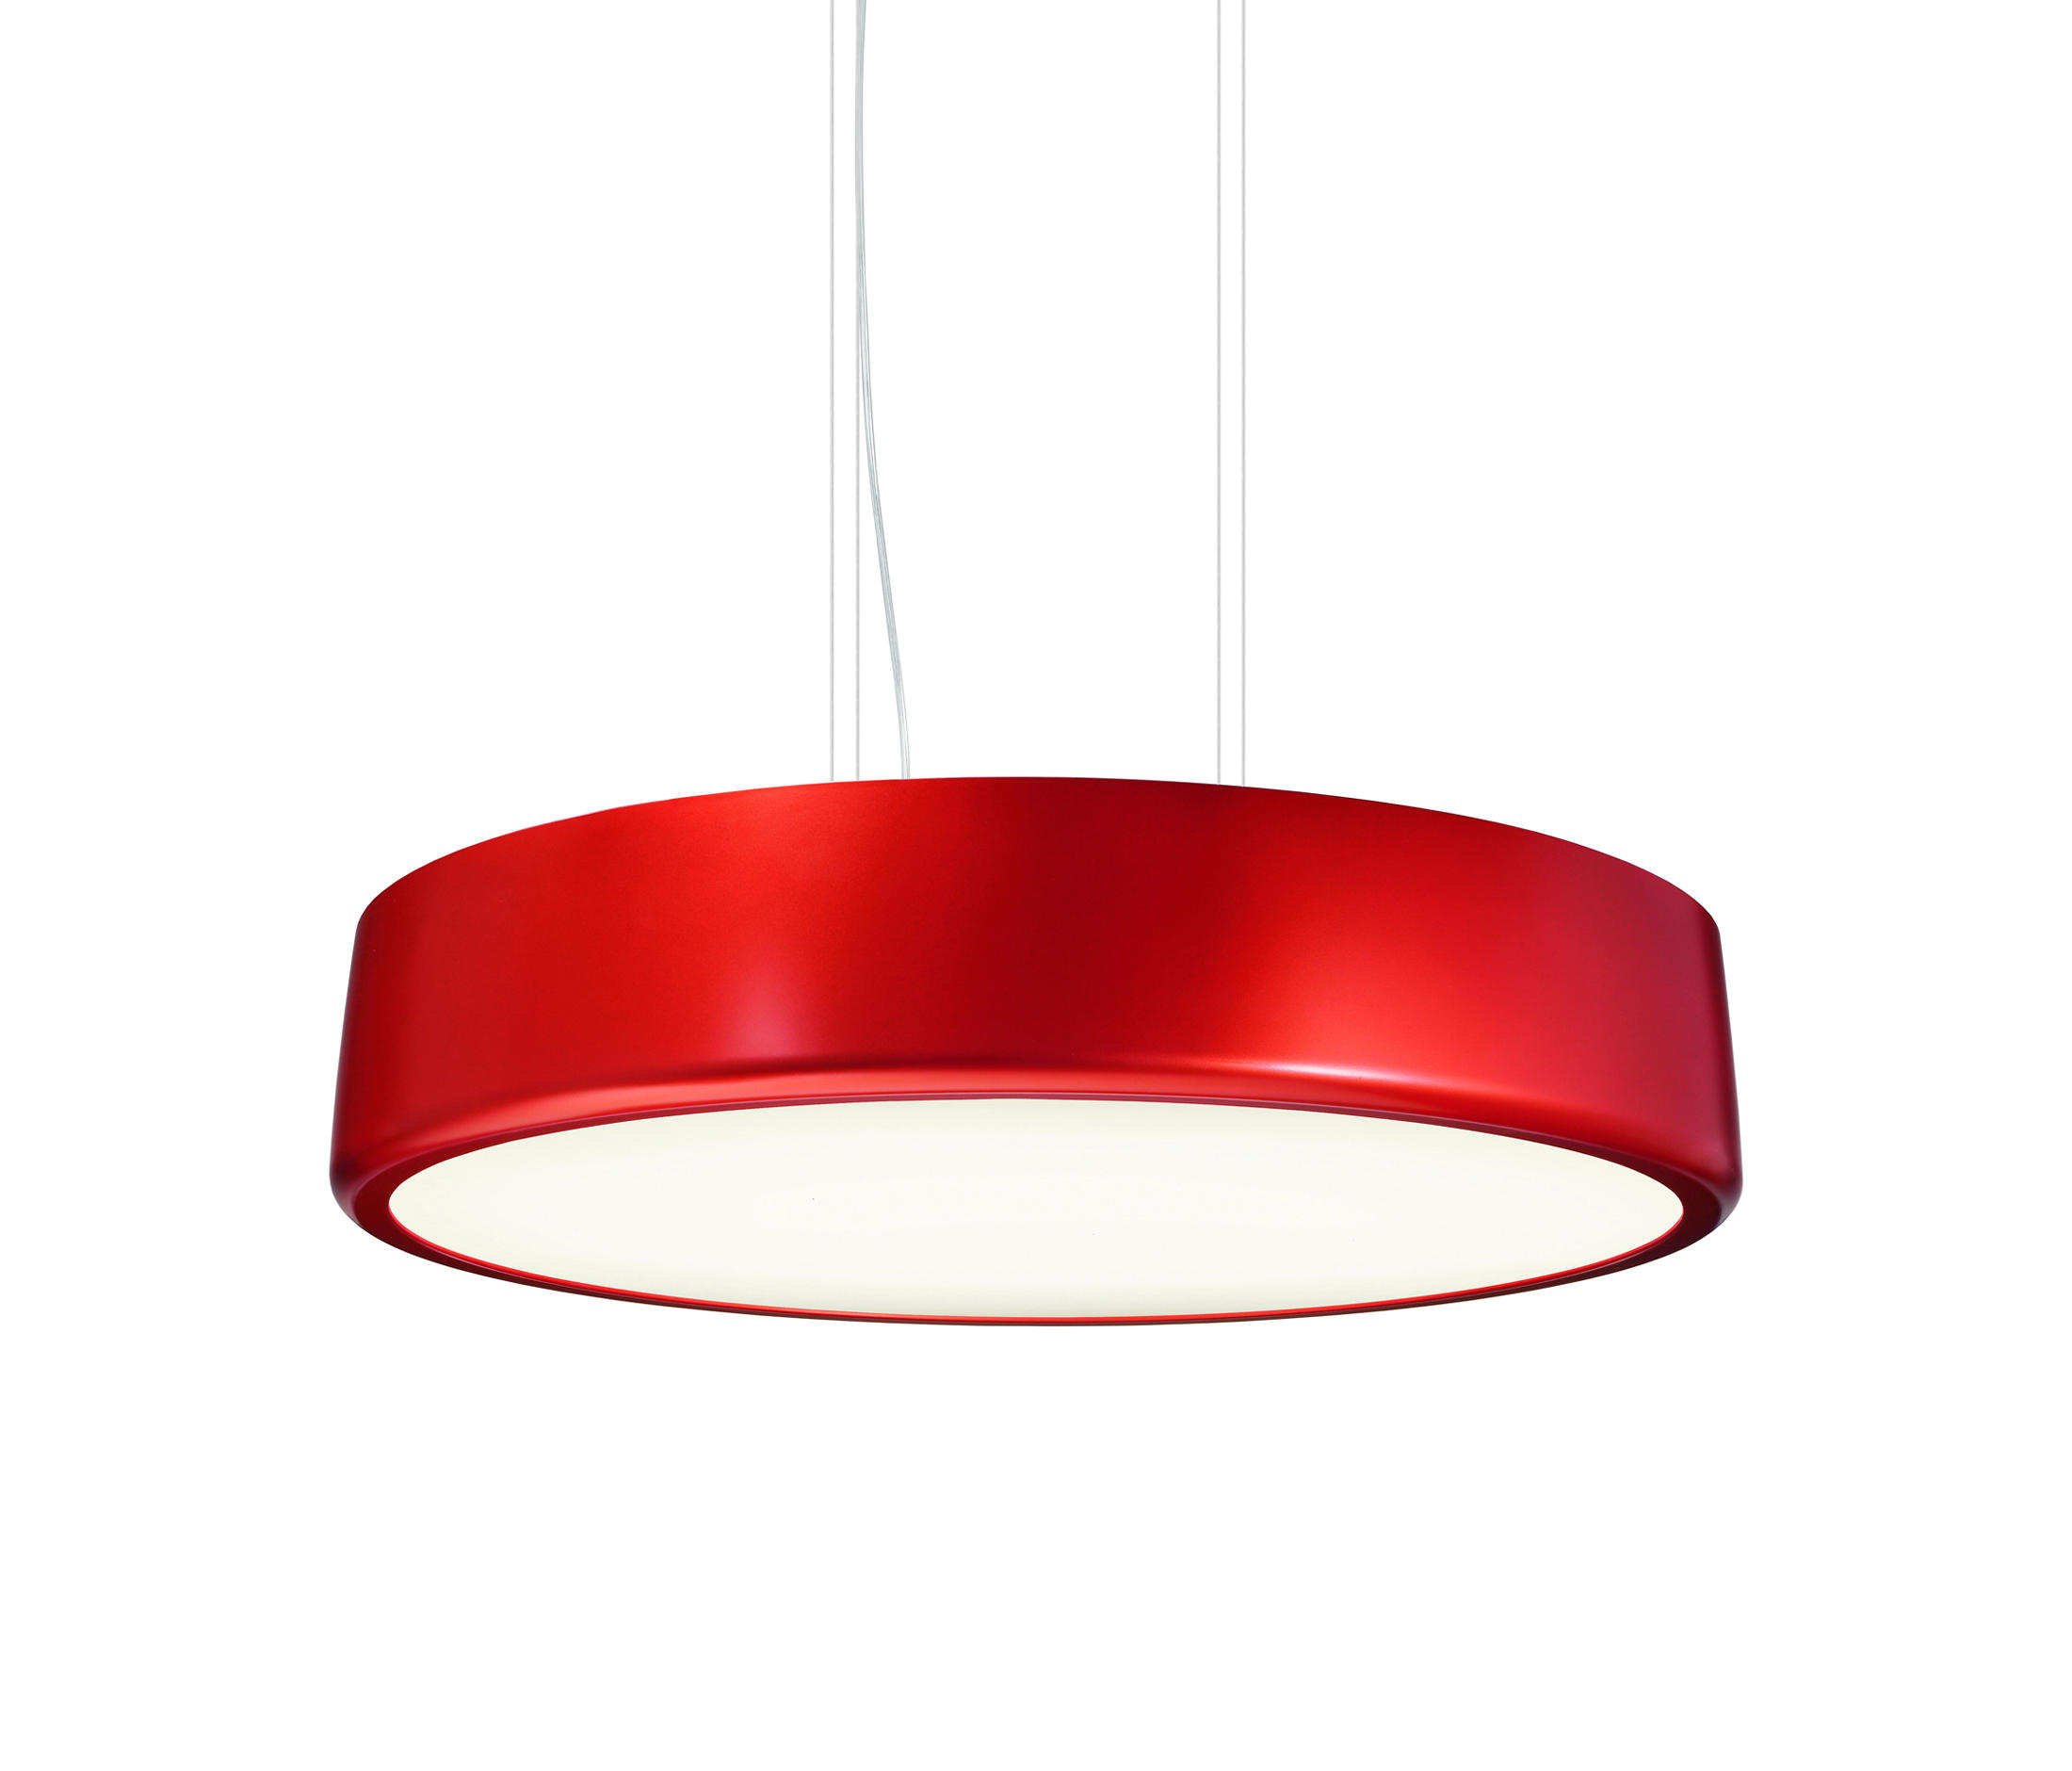 Ercole Suspension by Targetti | General lighting ...  sc 1 st  Architonic & ERCOLE SUSPENSION - General lighting from Targetti | Architonic azcodes.com